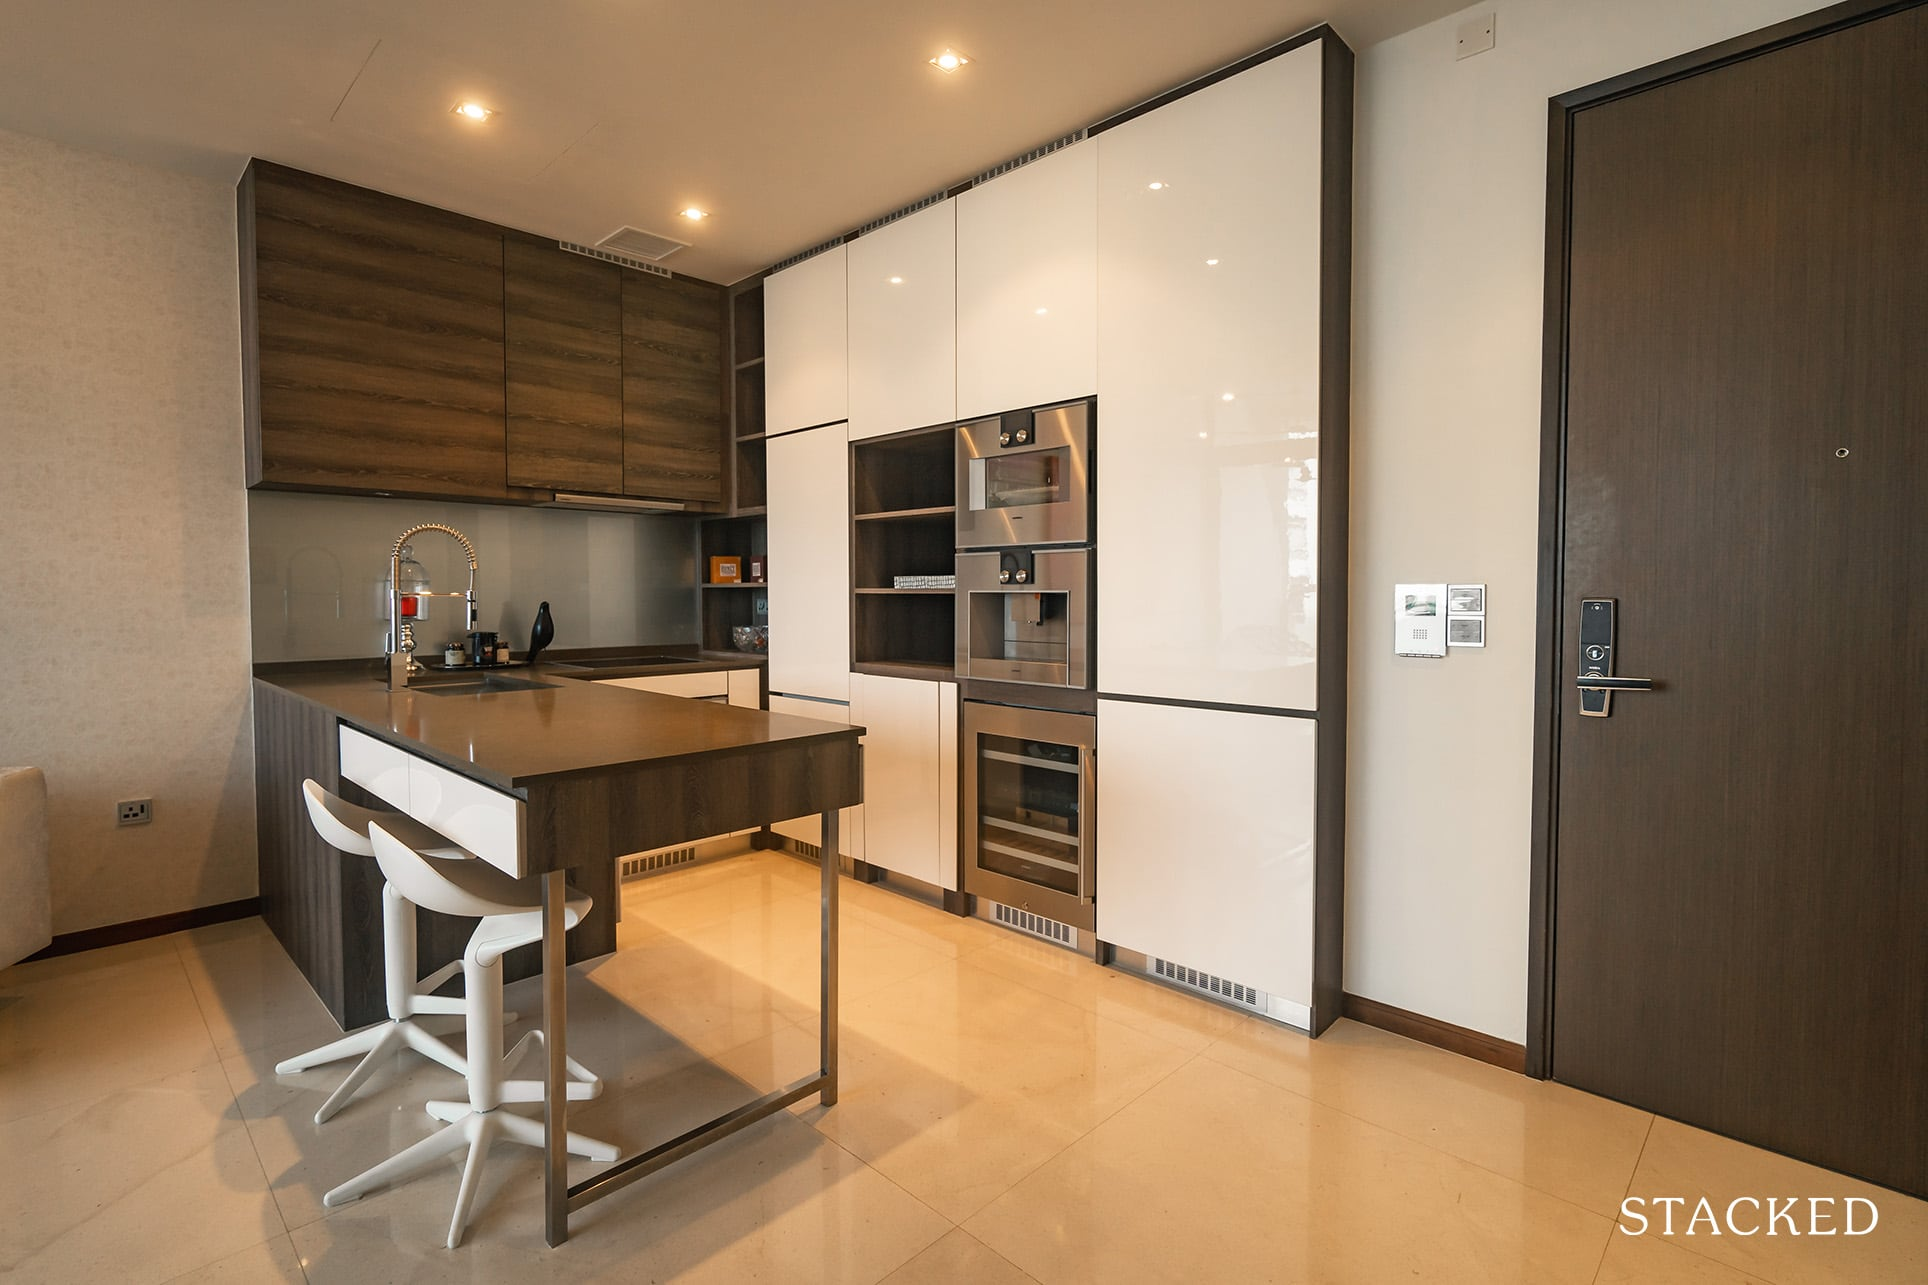 the Scotts tower 2 bedroom kitchen